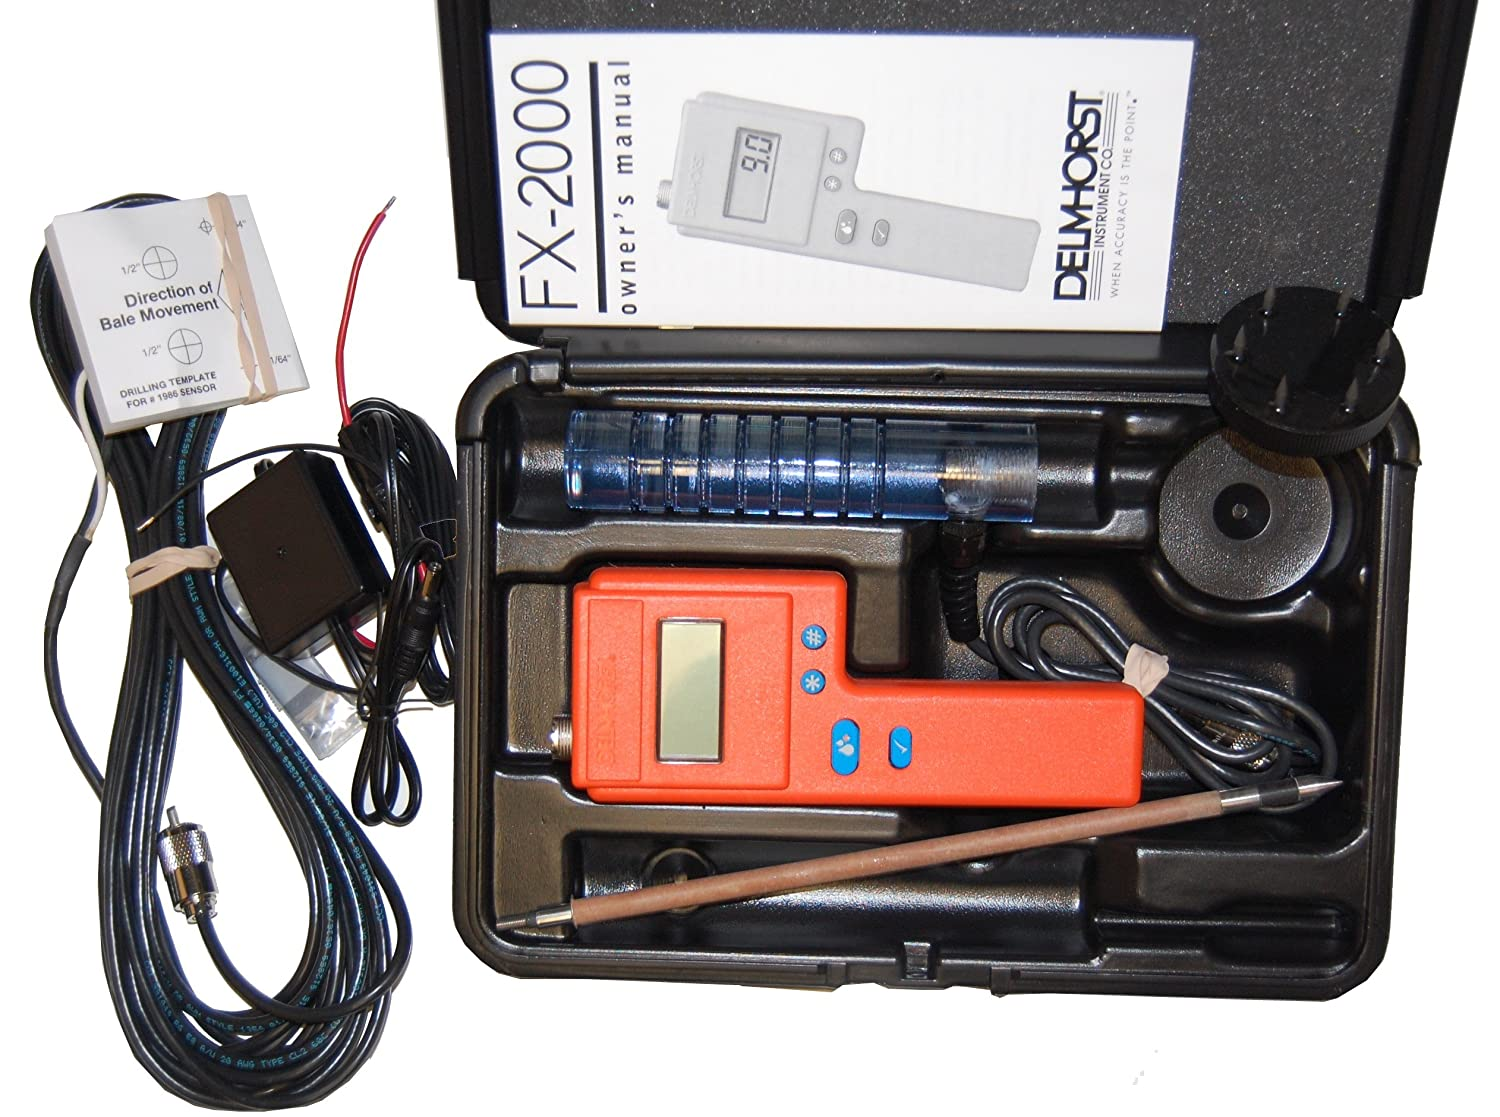 Delmhorst FX-2000 Hay Moisture Meter Tester, 10 inch Probe Deluxe Package by Delmhorst B004H4QLAI